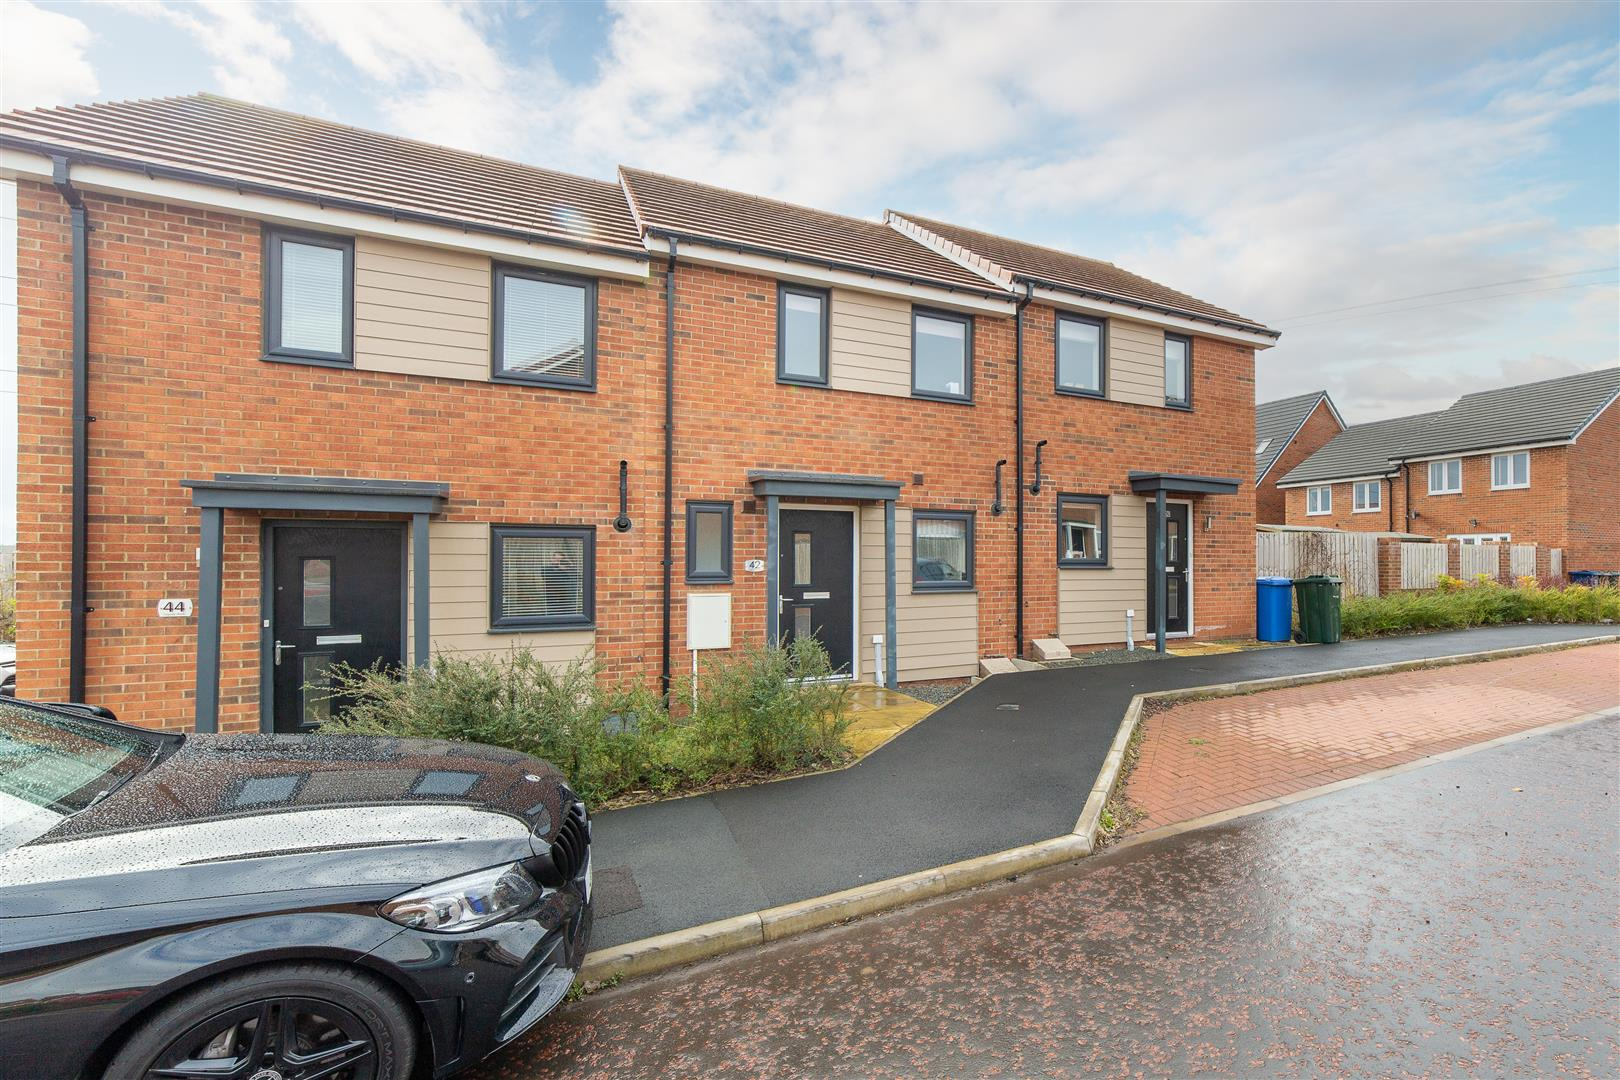 2 bed terraced house for sale in Osprey Walk, Great Park - Property Image 1